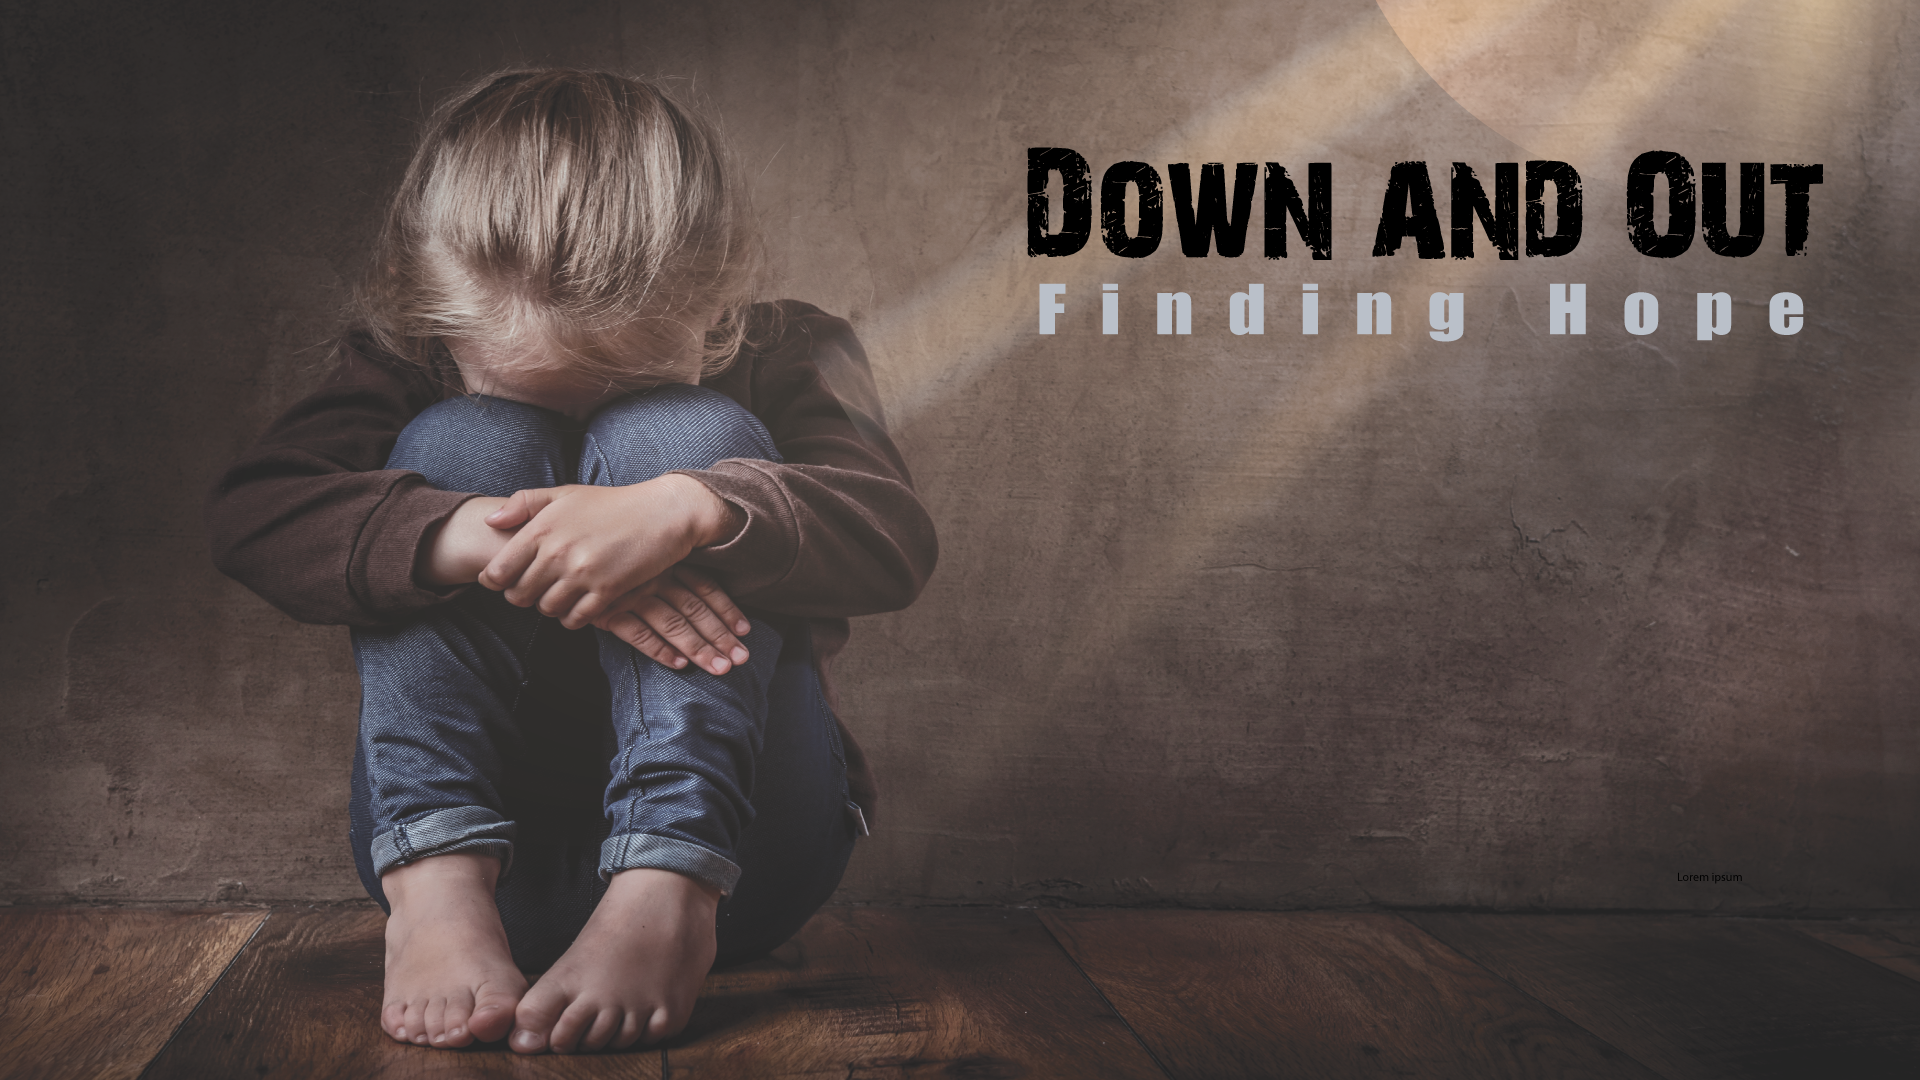 Down-and-Out-1920x1080